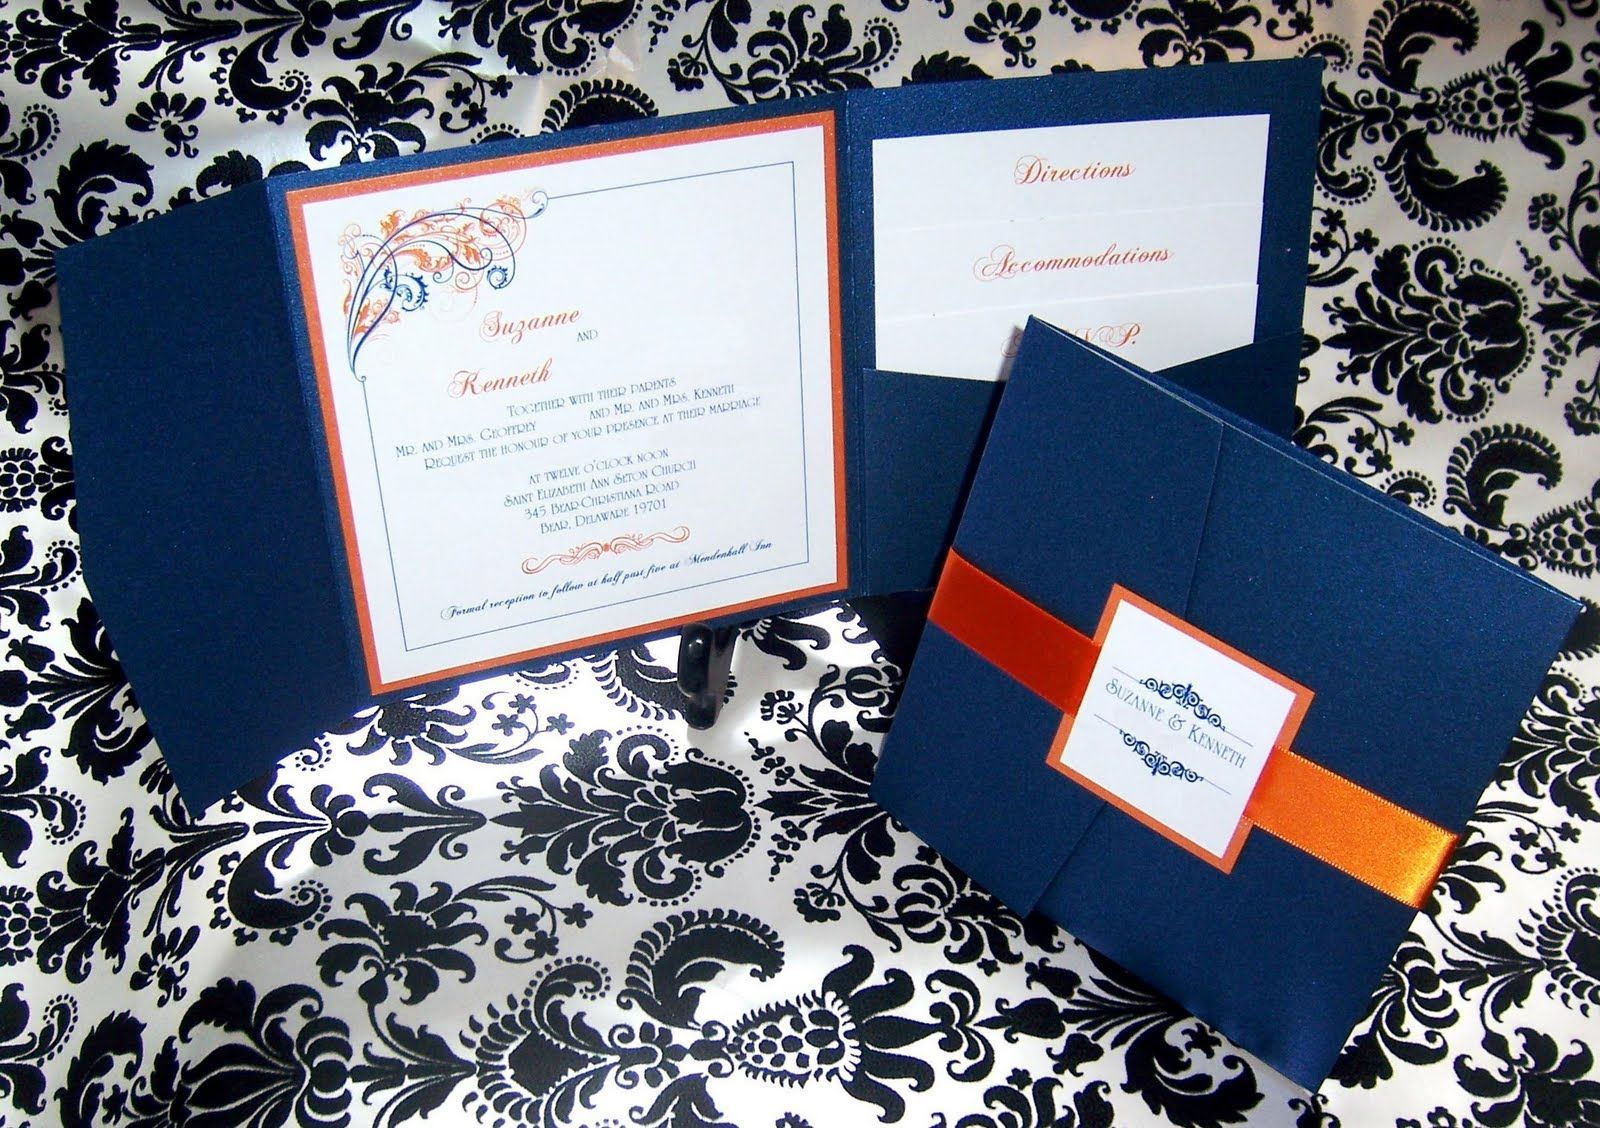 Some People Think I M Crazy For Mixing Navy Blue And Orange Together